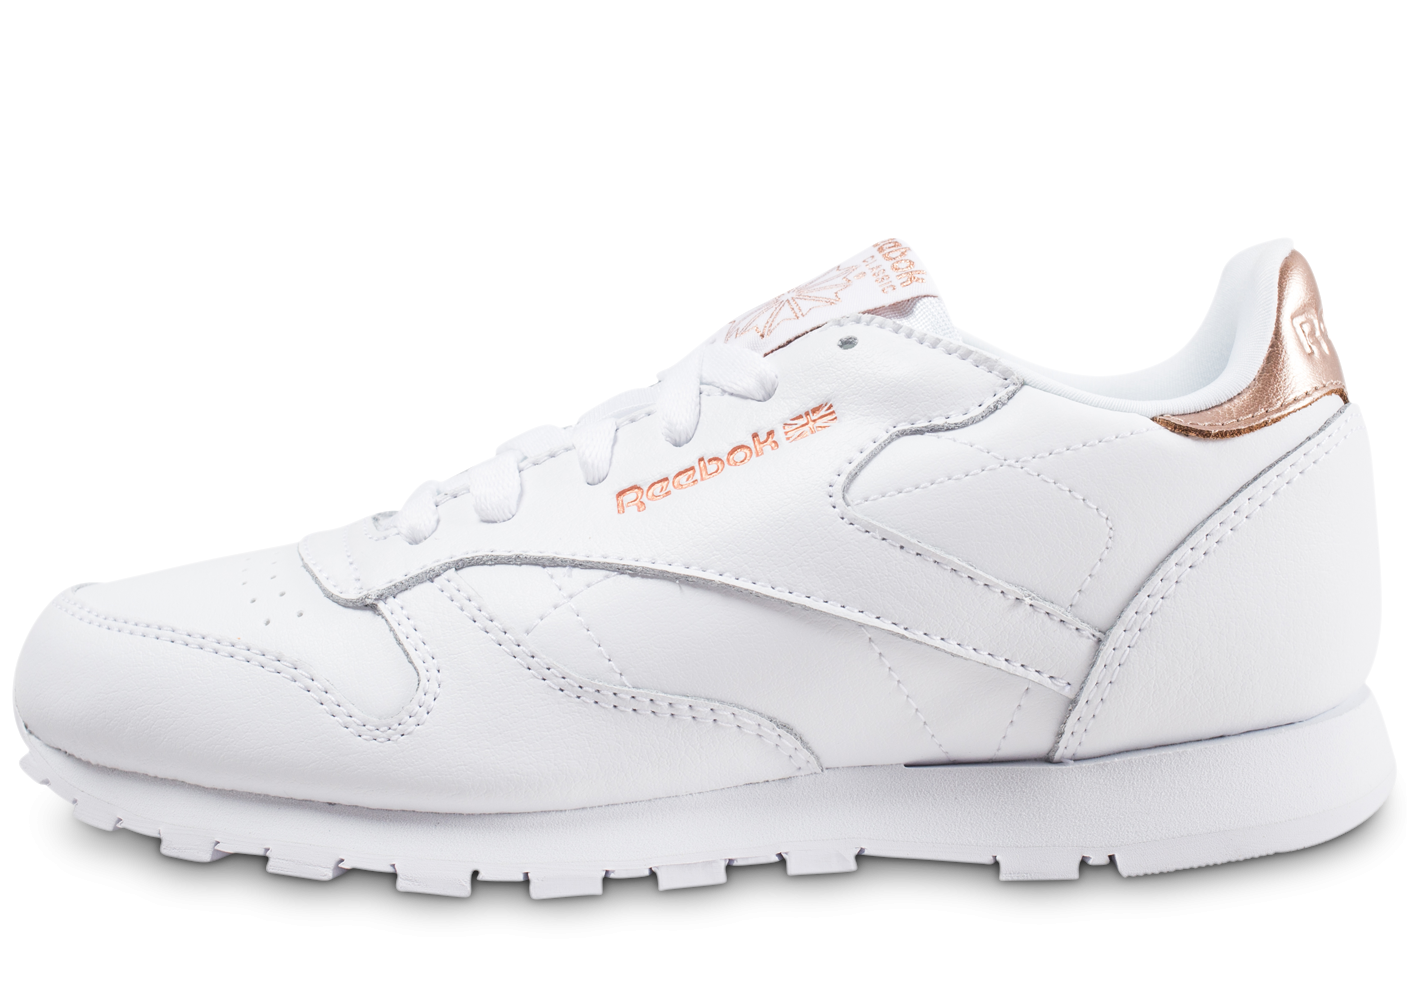 classic or reebok femme blanche or femme reebok classic blanche classic reebok femme j5Lc4AR3q